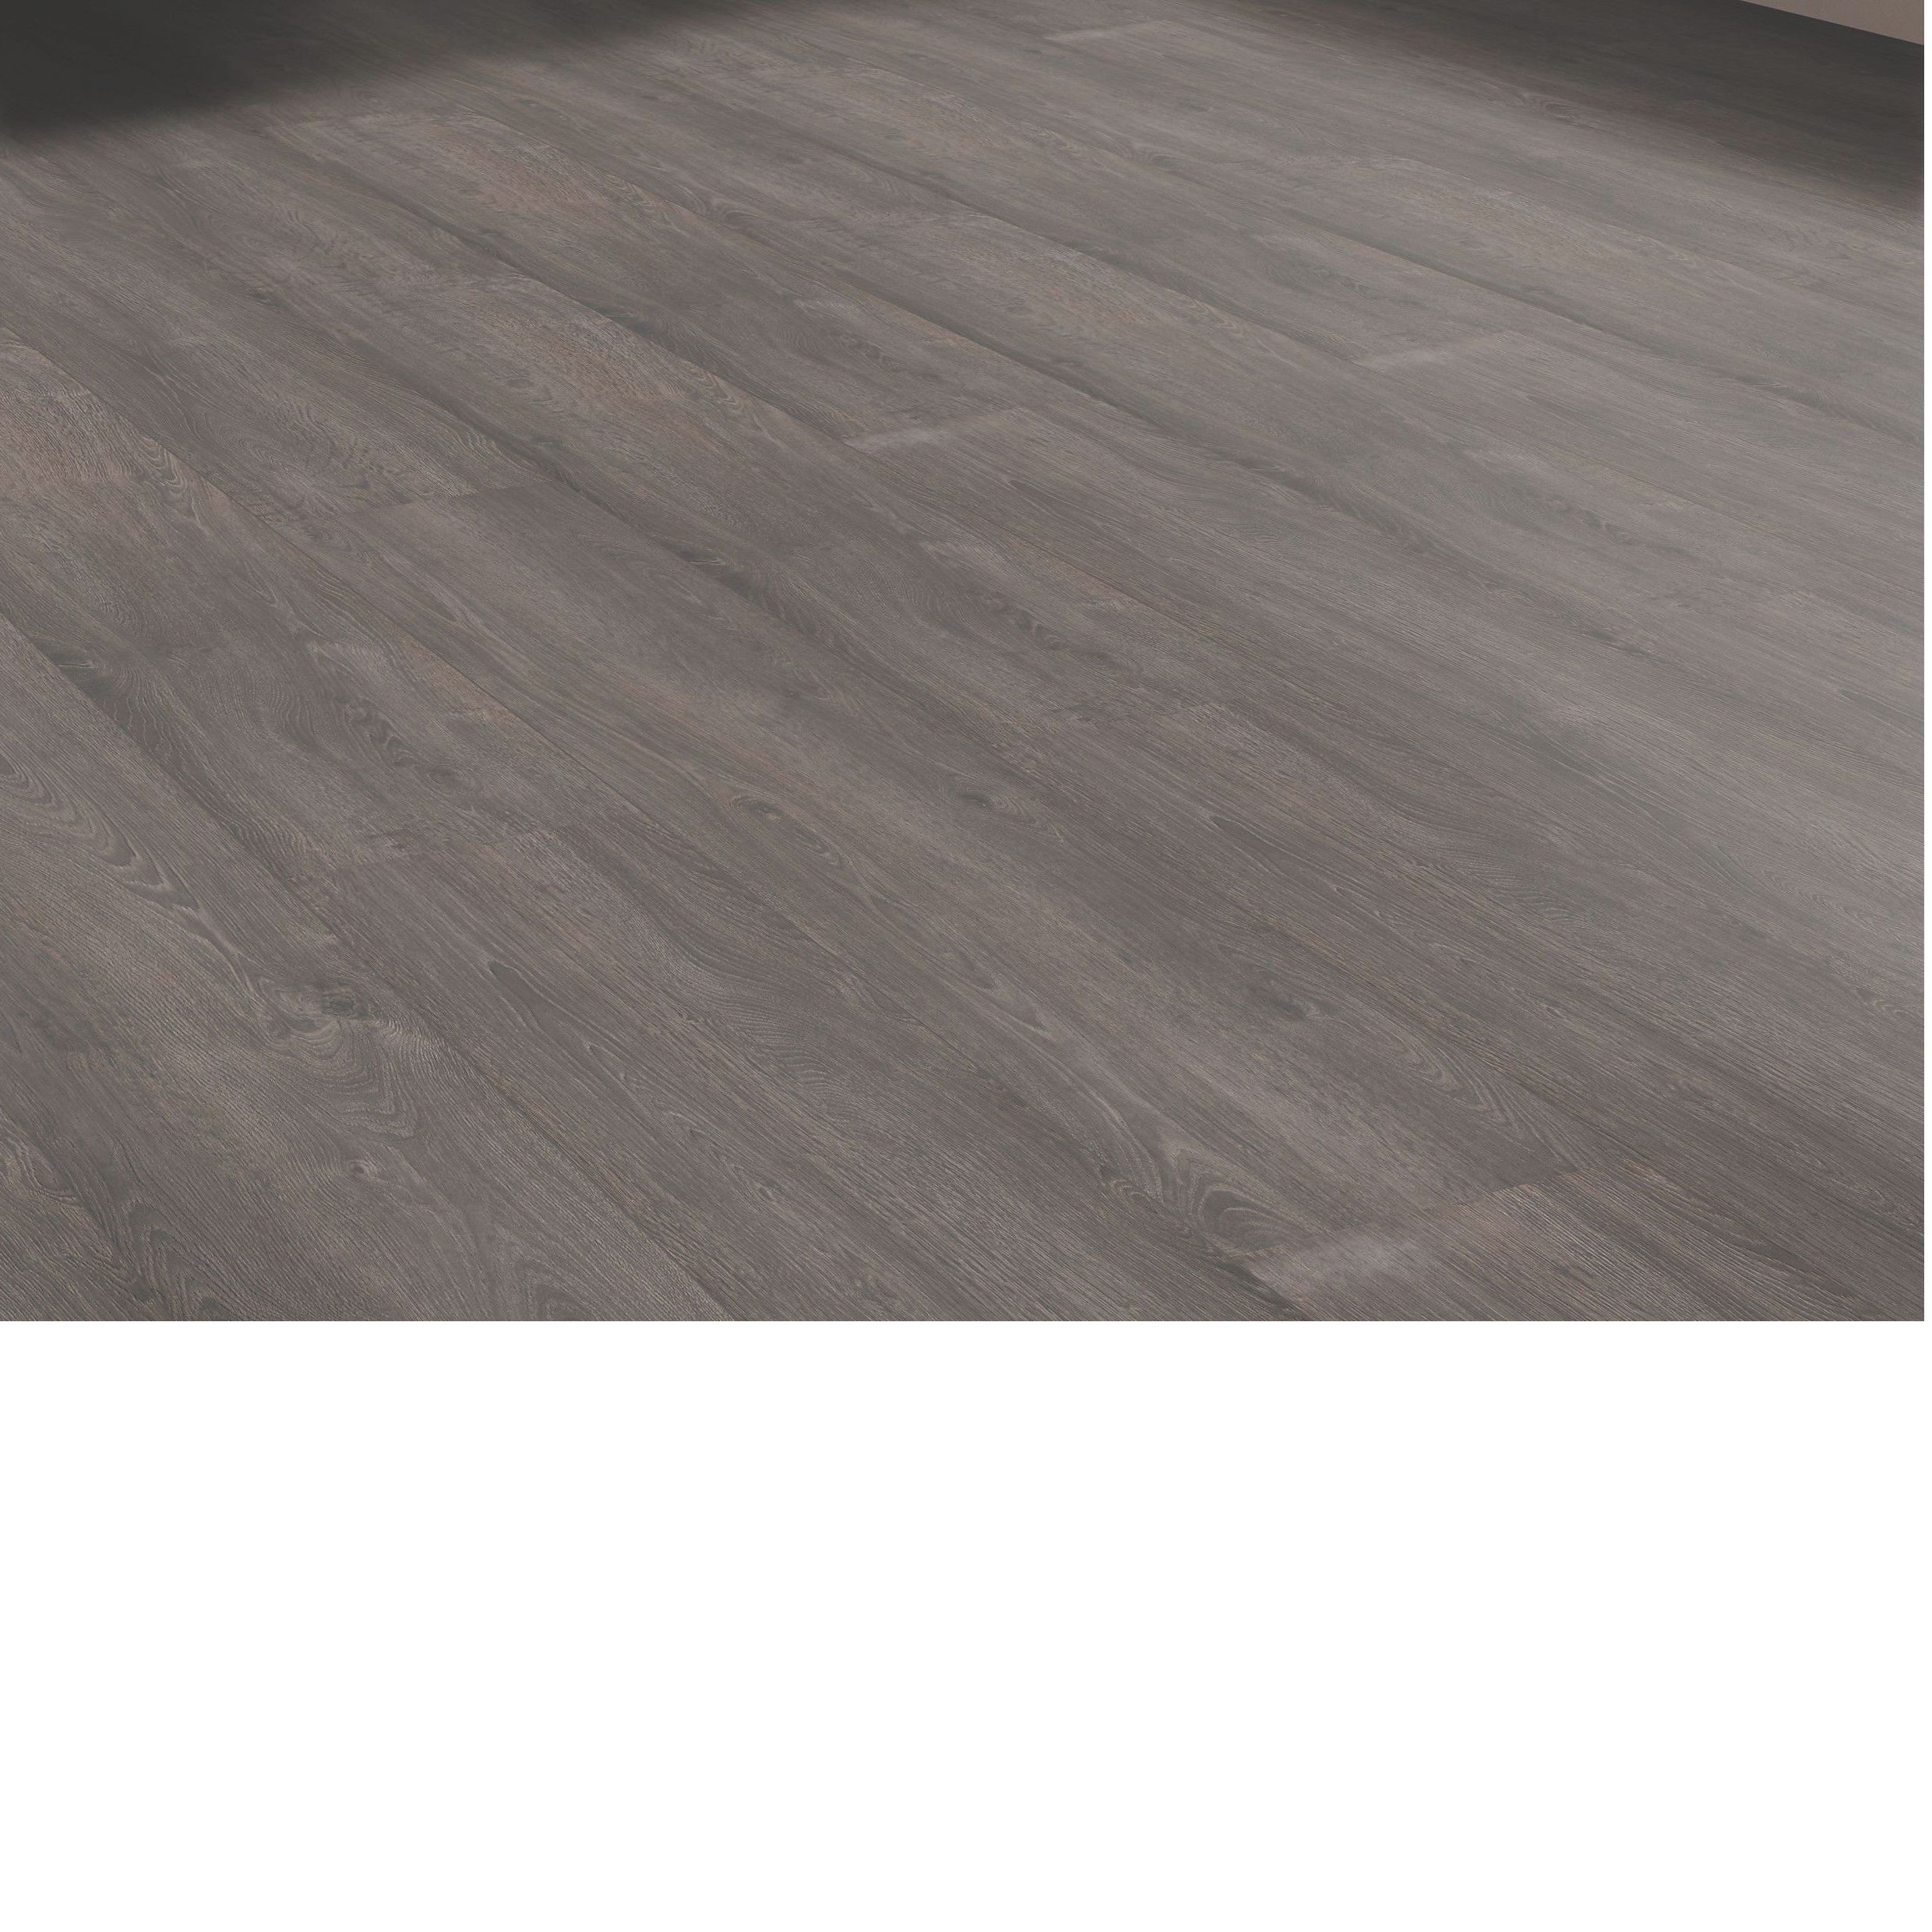 Princeps Santander Oak Effect Wide Plank Laminate Flooring 145 M²